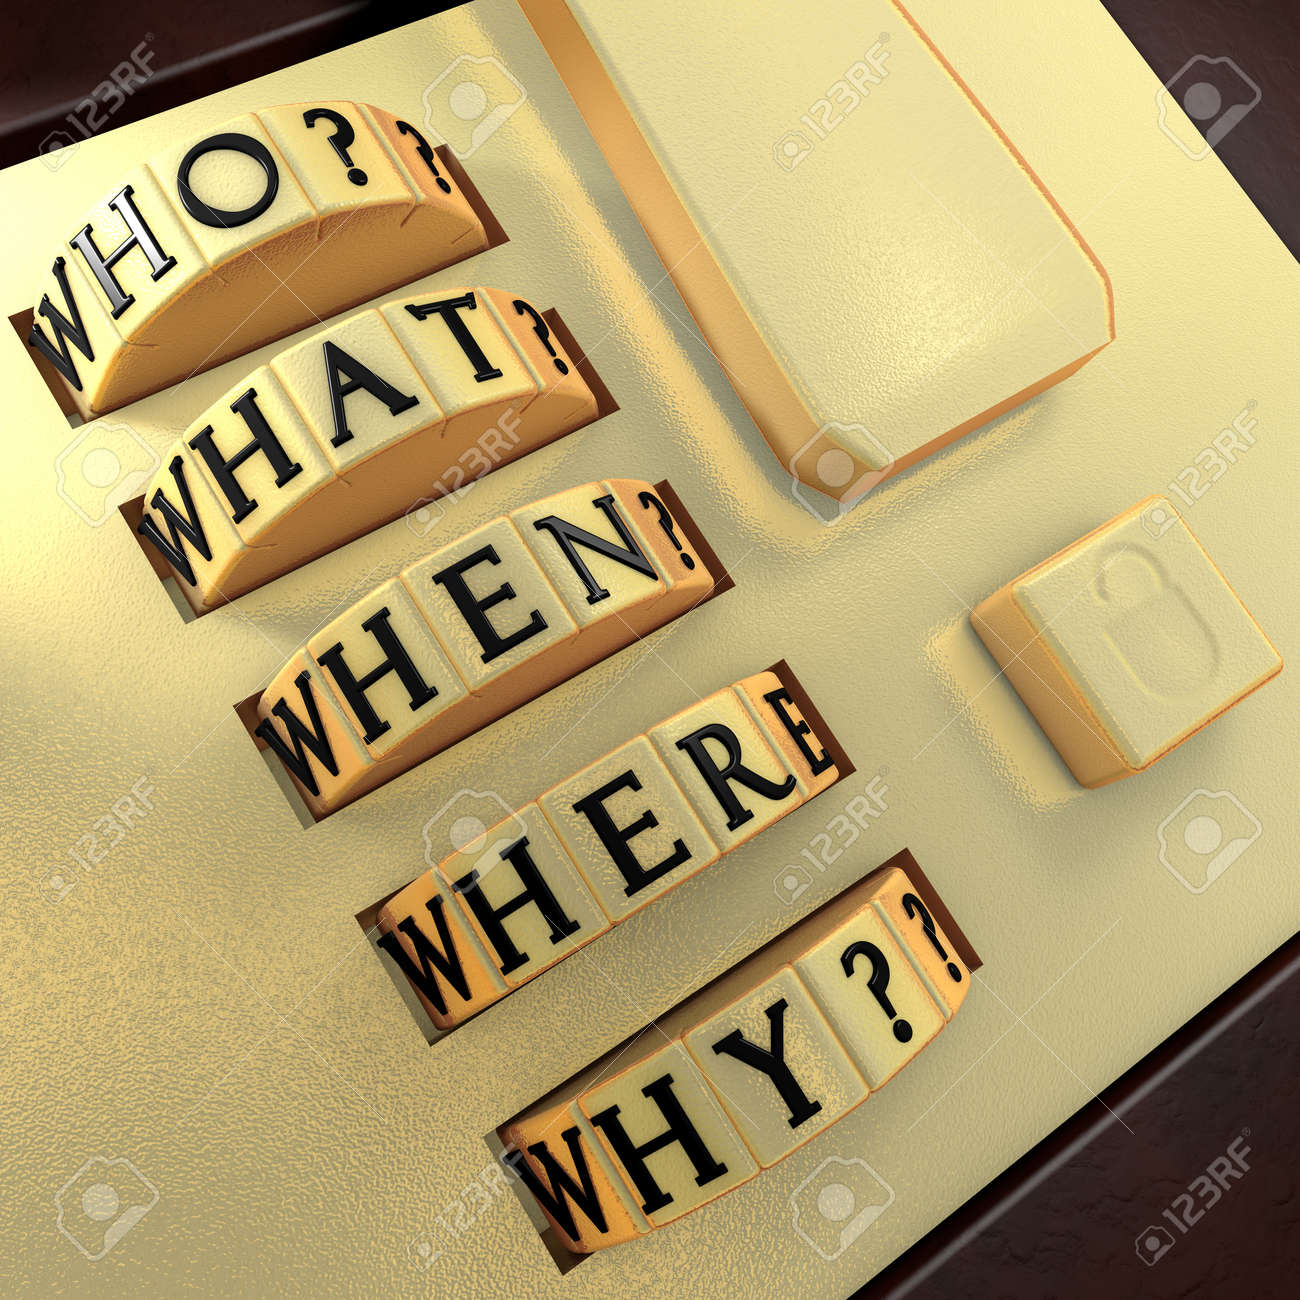 Five Ws: Who? What? Where? When? Why? Answer this question in order to unlock the suitcase - 12306063